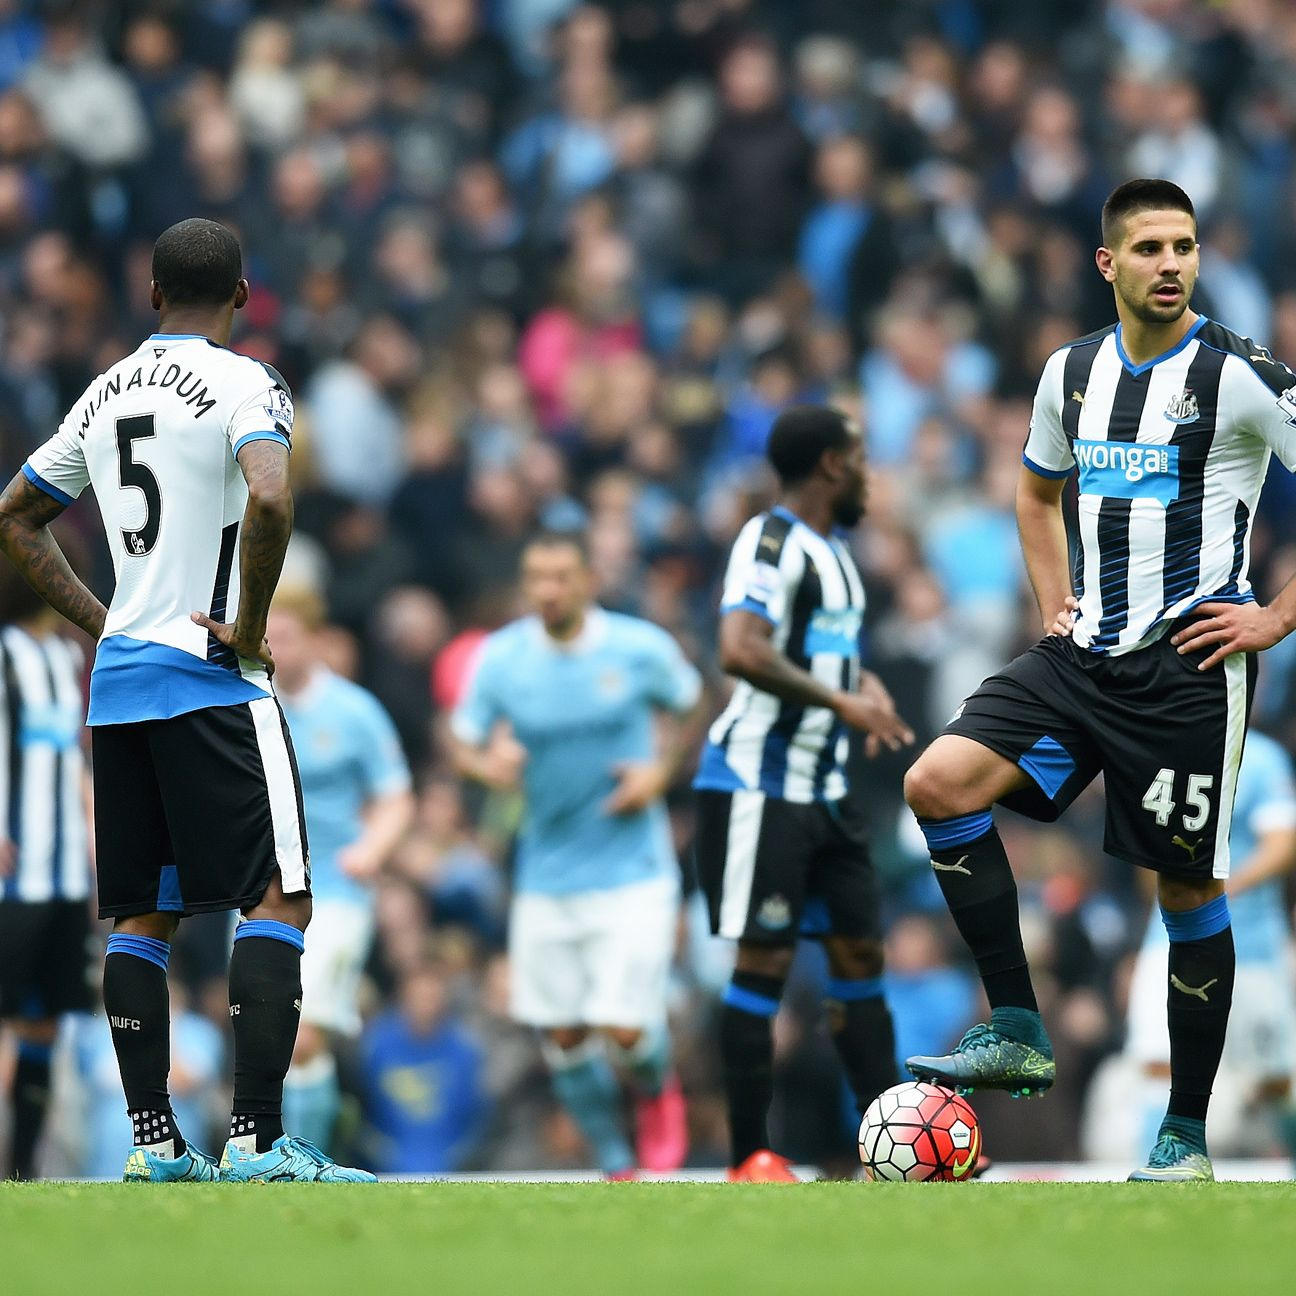 With each winless week, the angst grows at Newcastle.